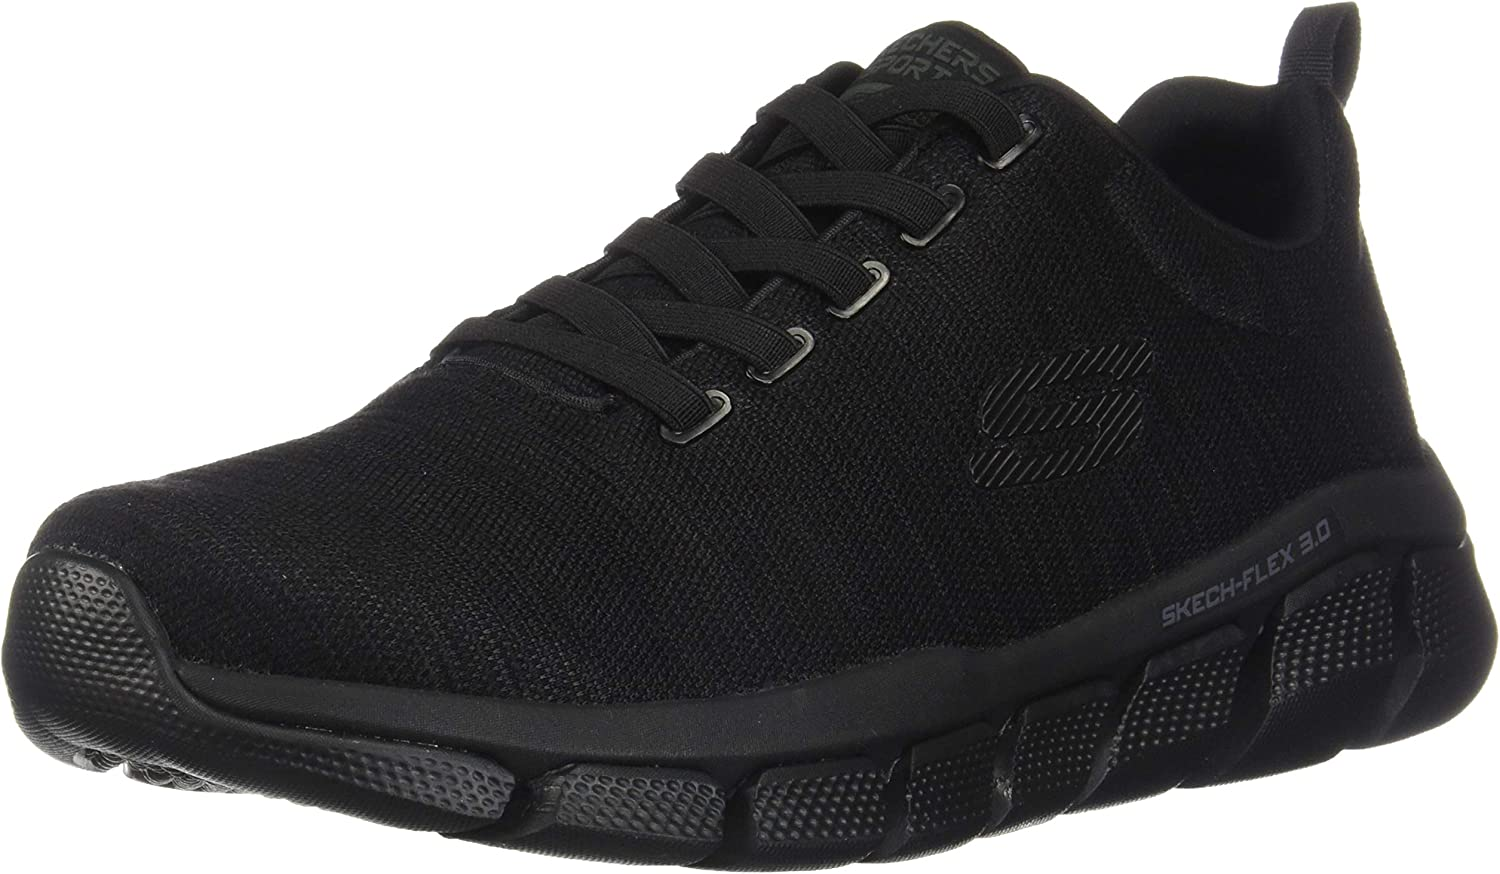 Skechers Relaxed Fit Flex 3.0 Strongkeep Pour des hommes Slip on paniers noir 9 XW